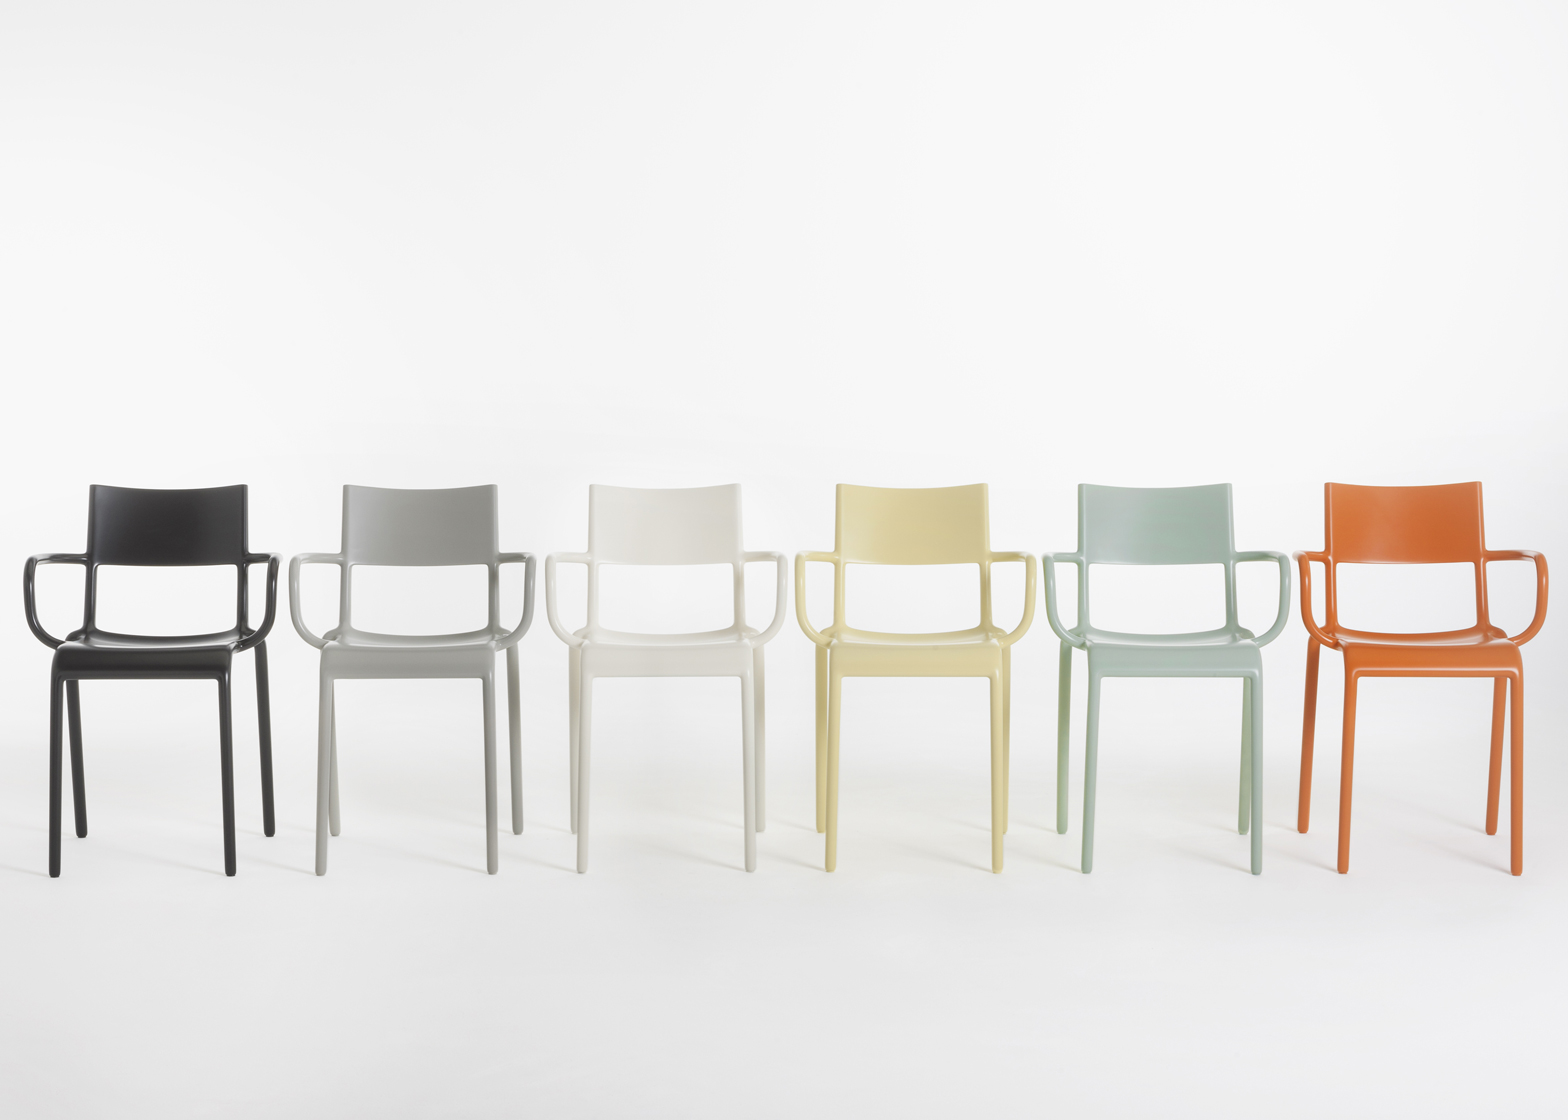 Generic chairs A and C by Philippe Starck for Kartell